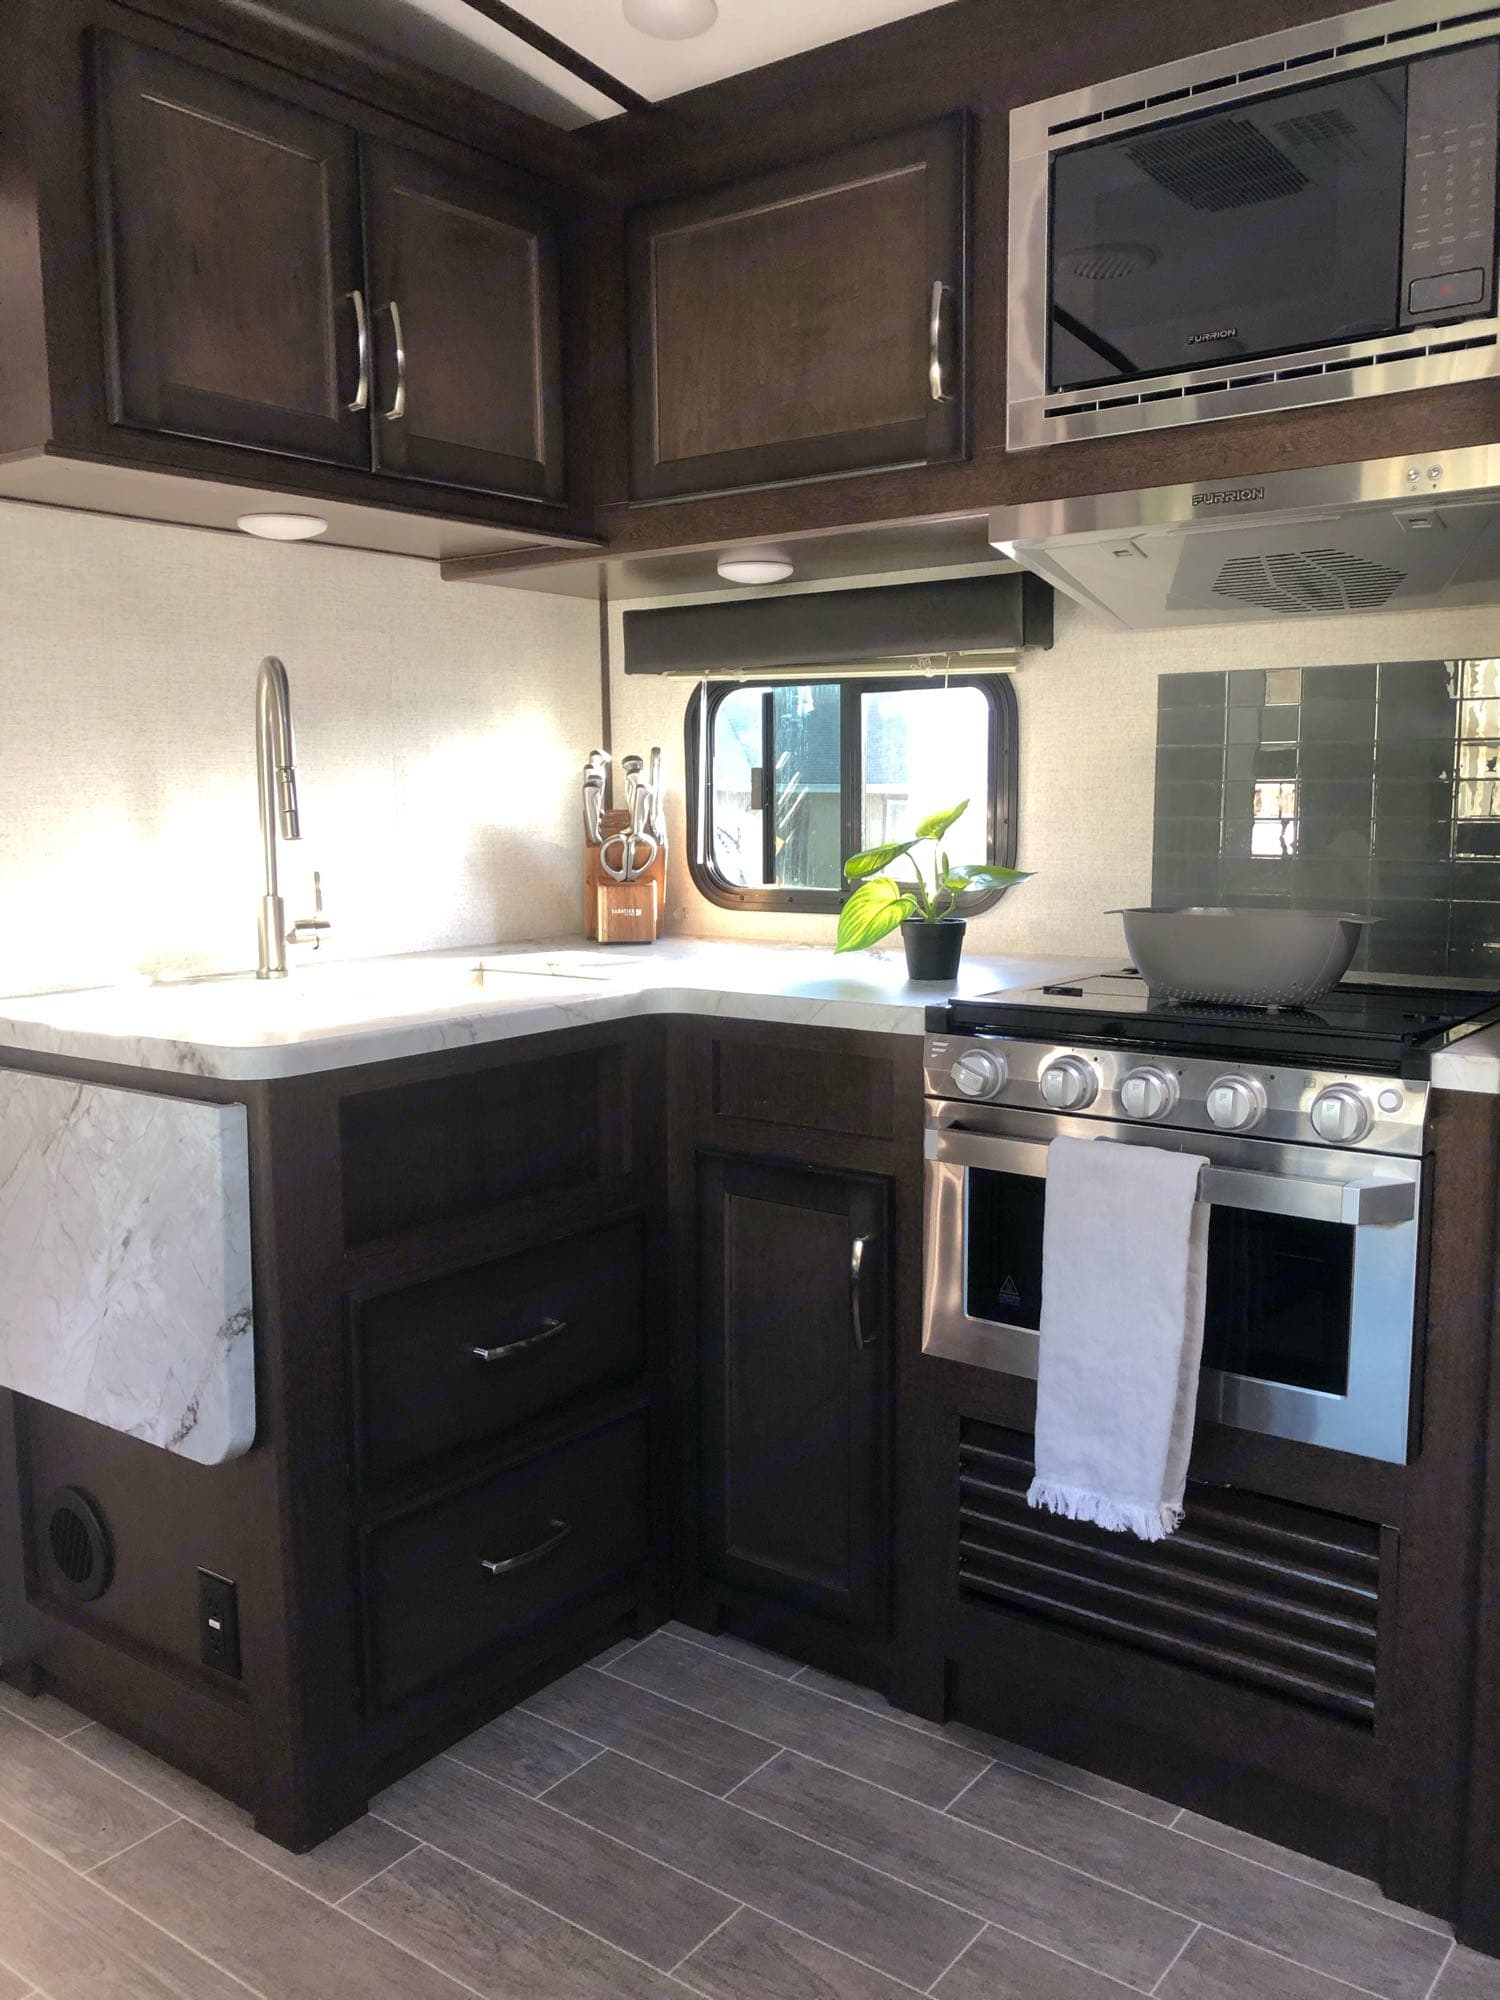 The kitchen complete with an oven, stove and microwave.. Dutchmen Other 2020